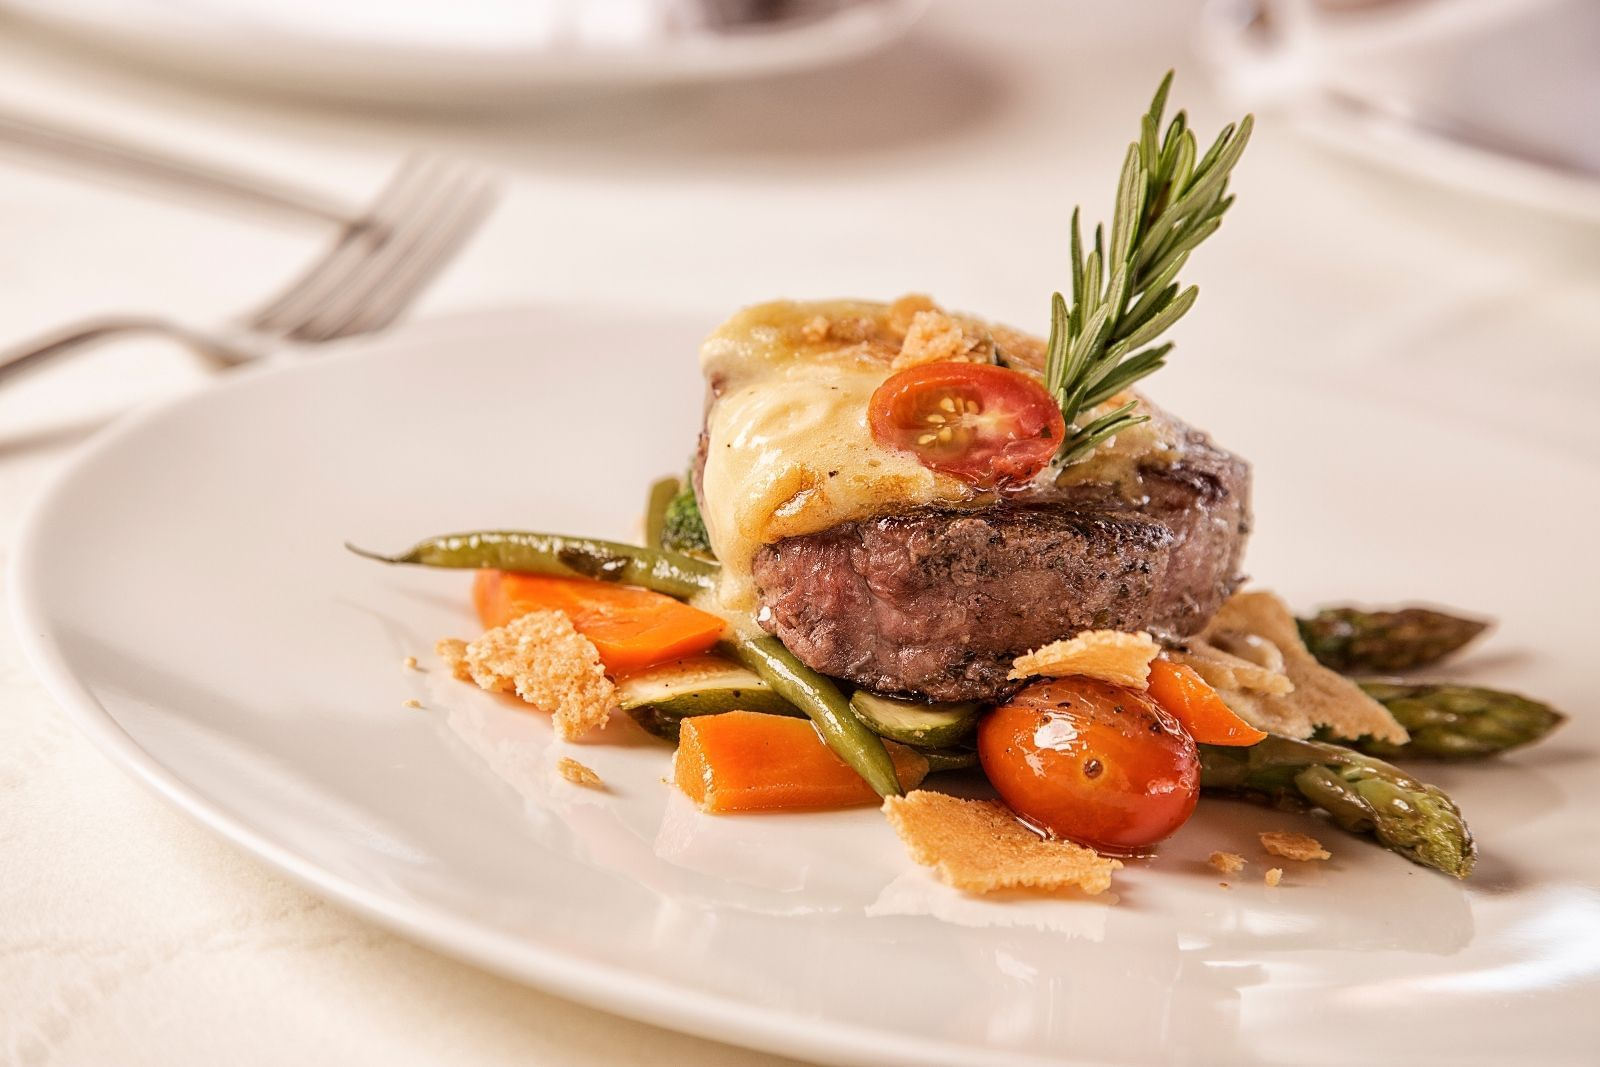 a steak and vegetable dish